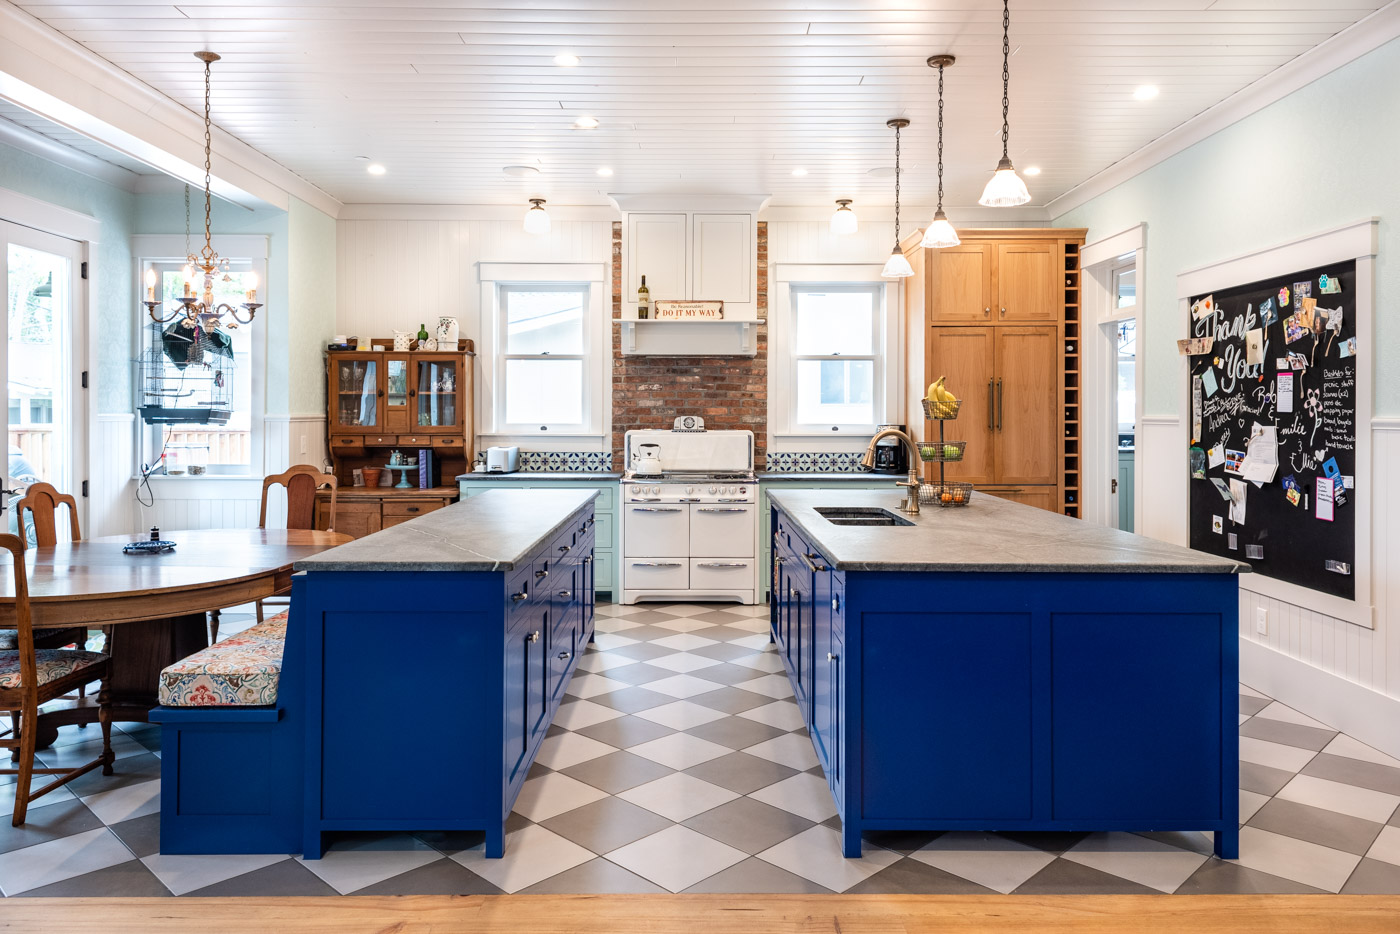 A galley kitchen layout with an eclectic style and two kitchen islands with custom painted blue cabinets